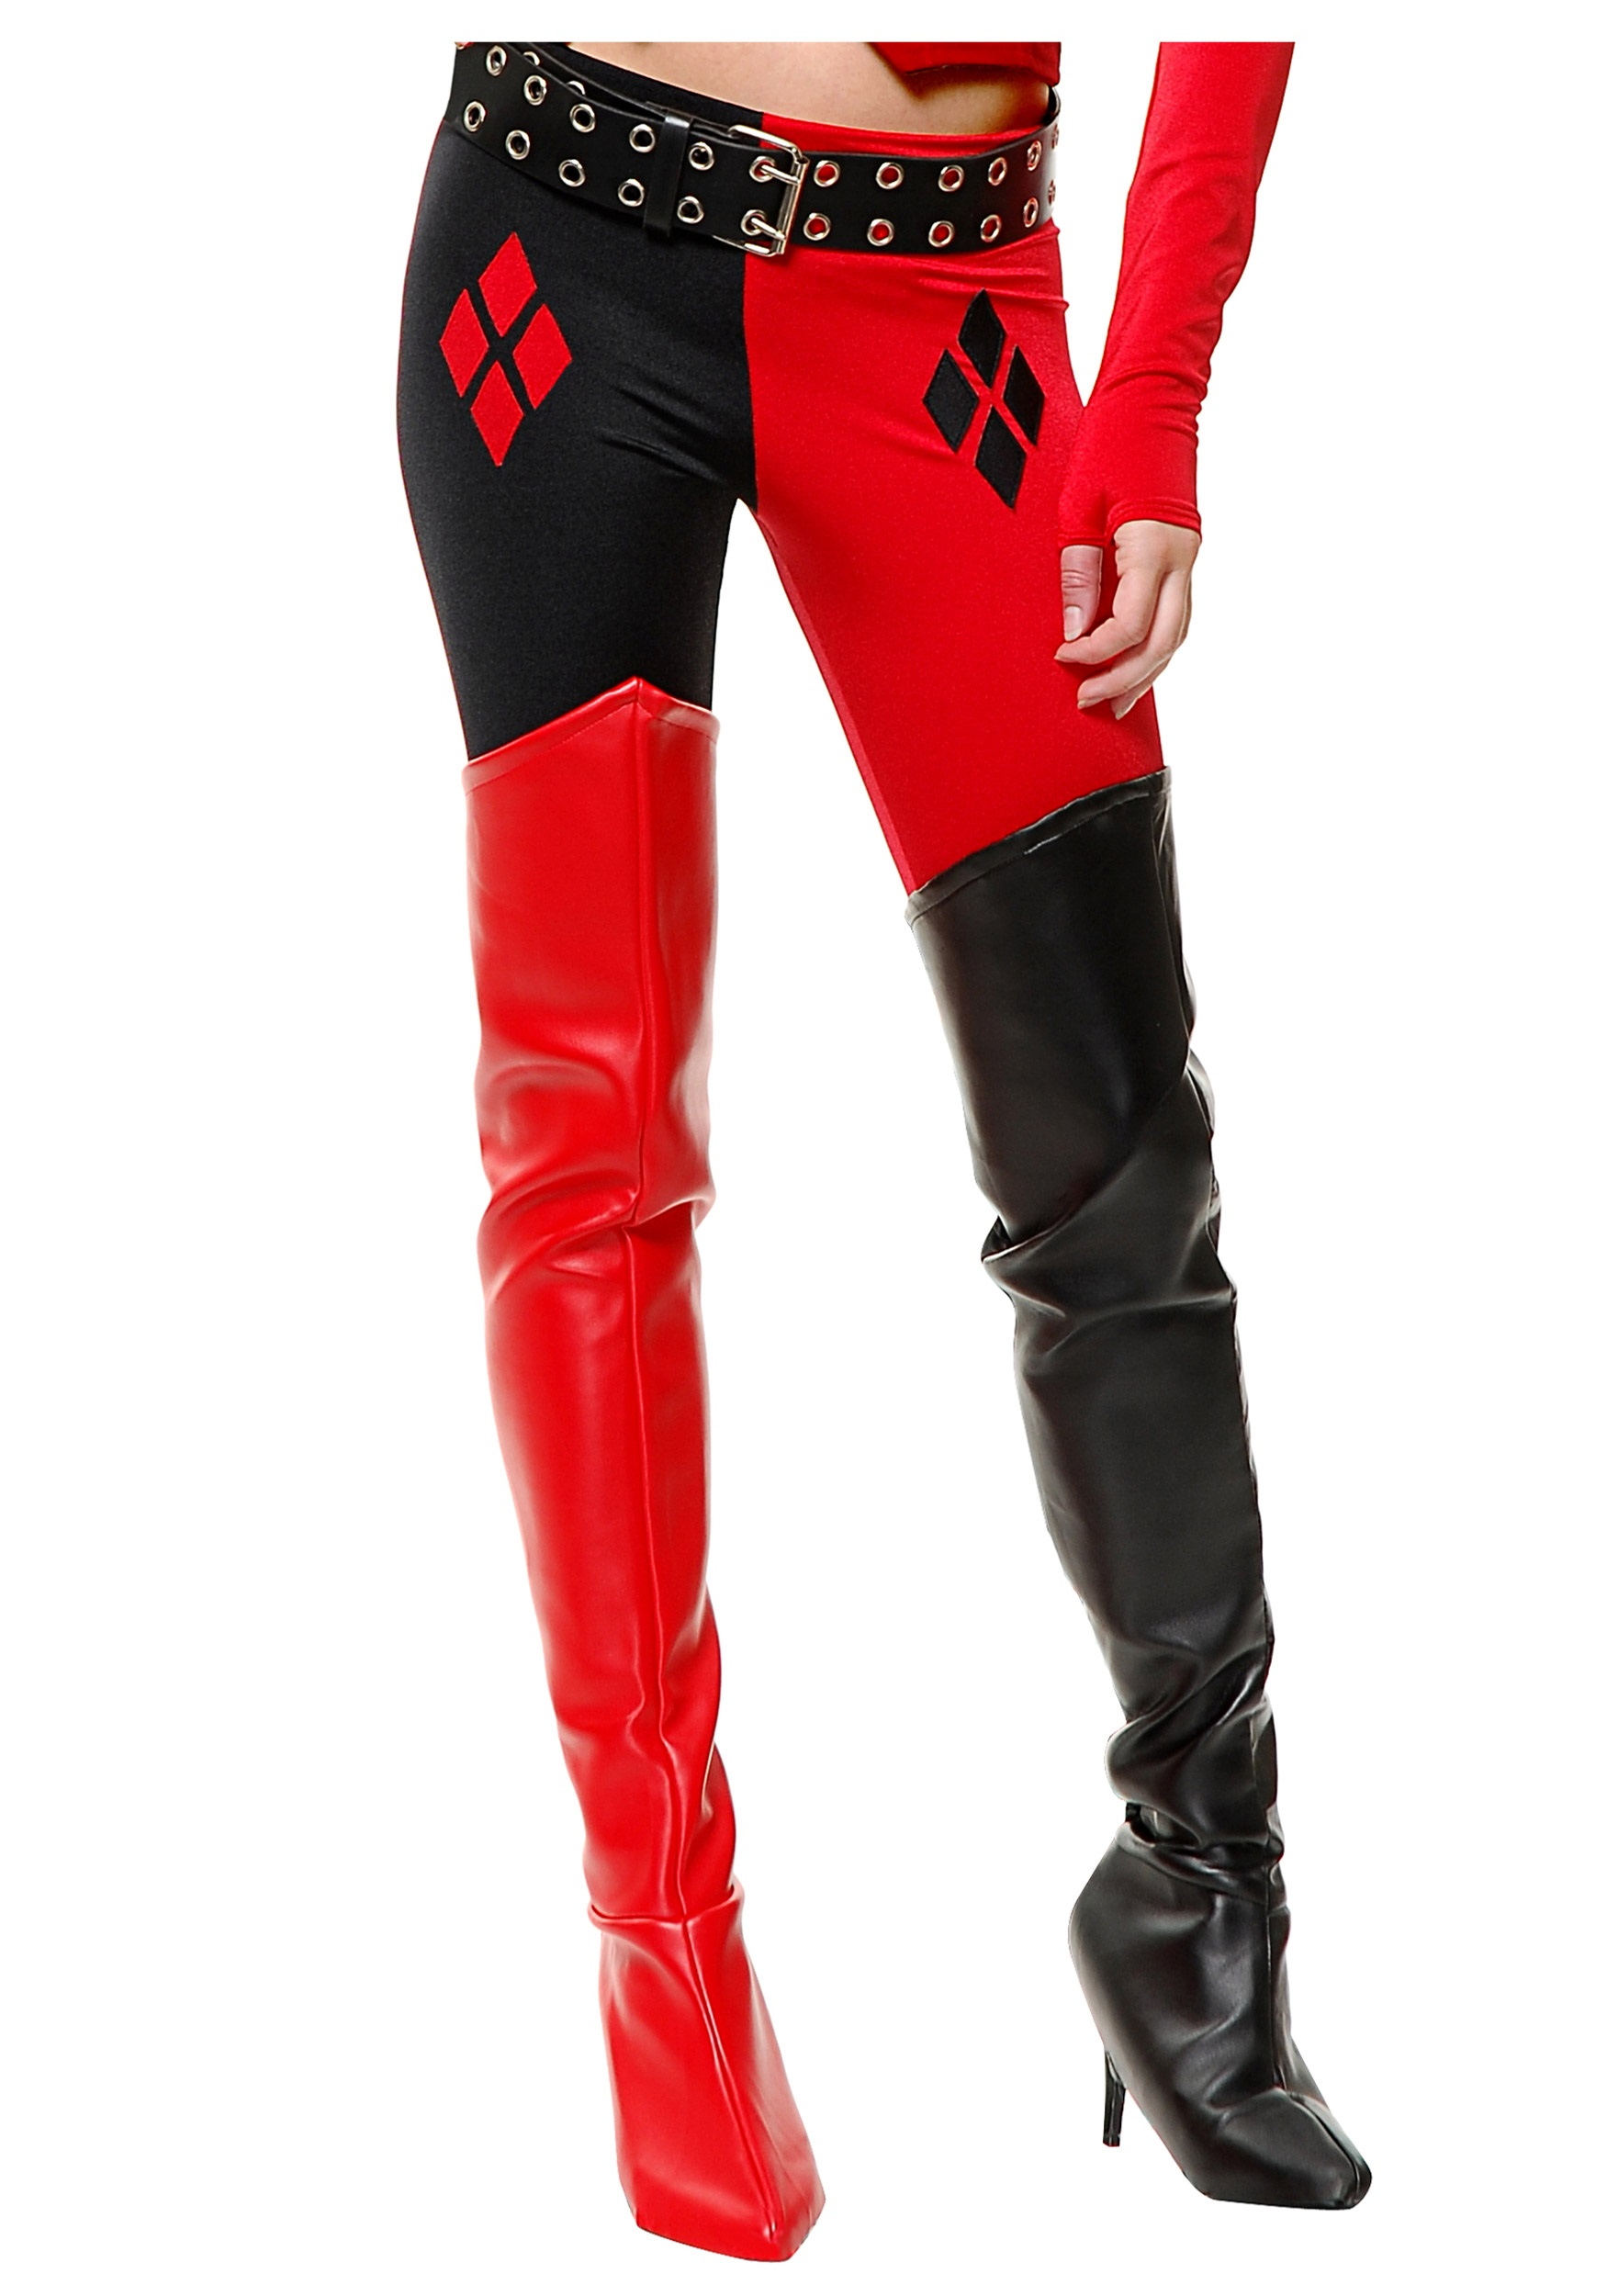 Superhero Boots / Boot Covers - Red, Black Superhero Boots